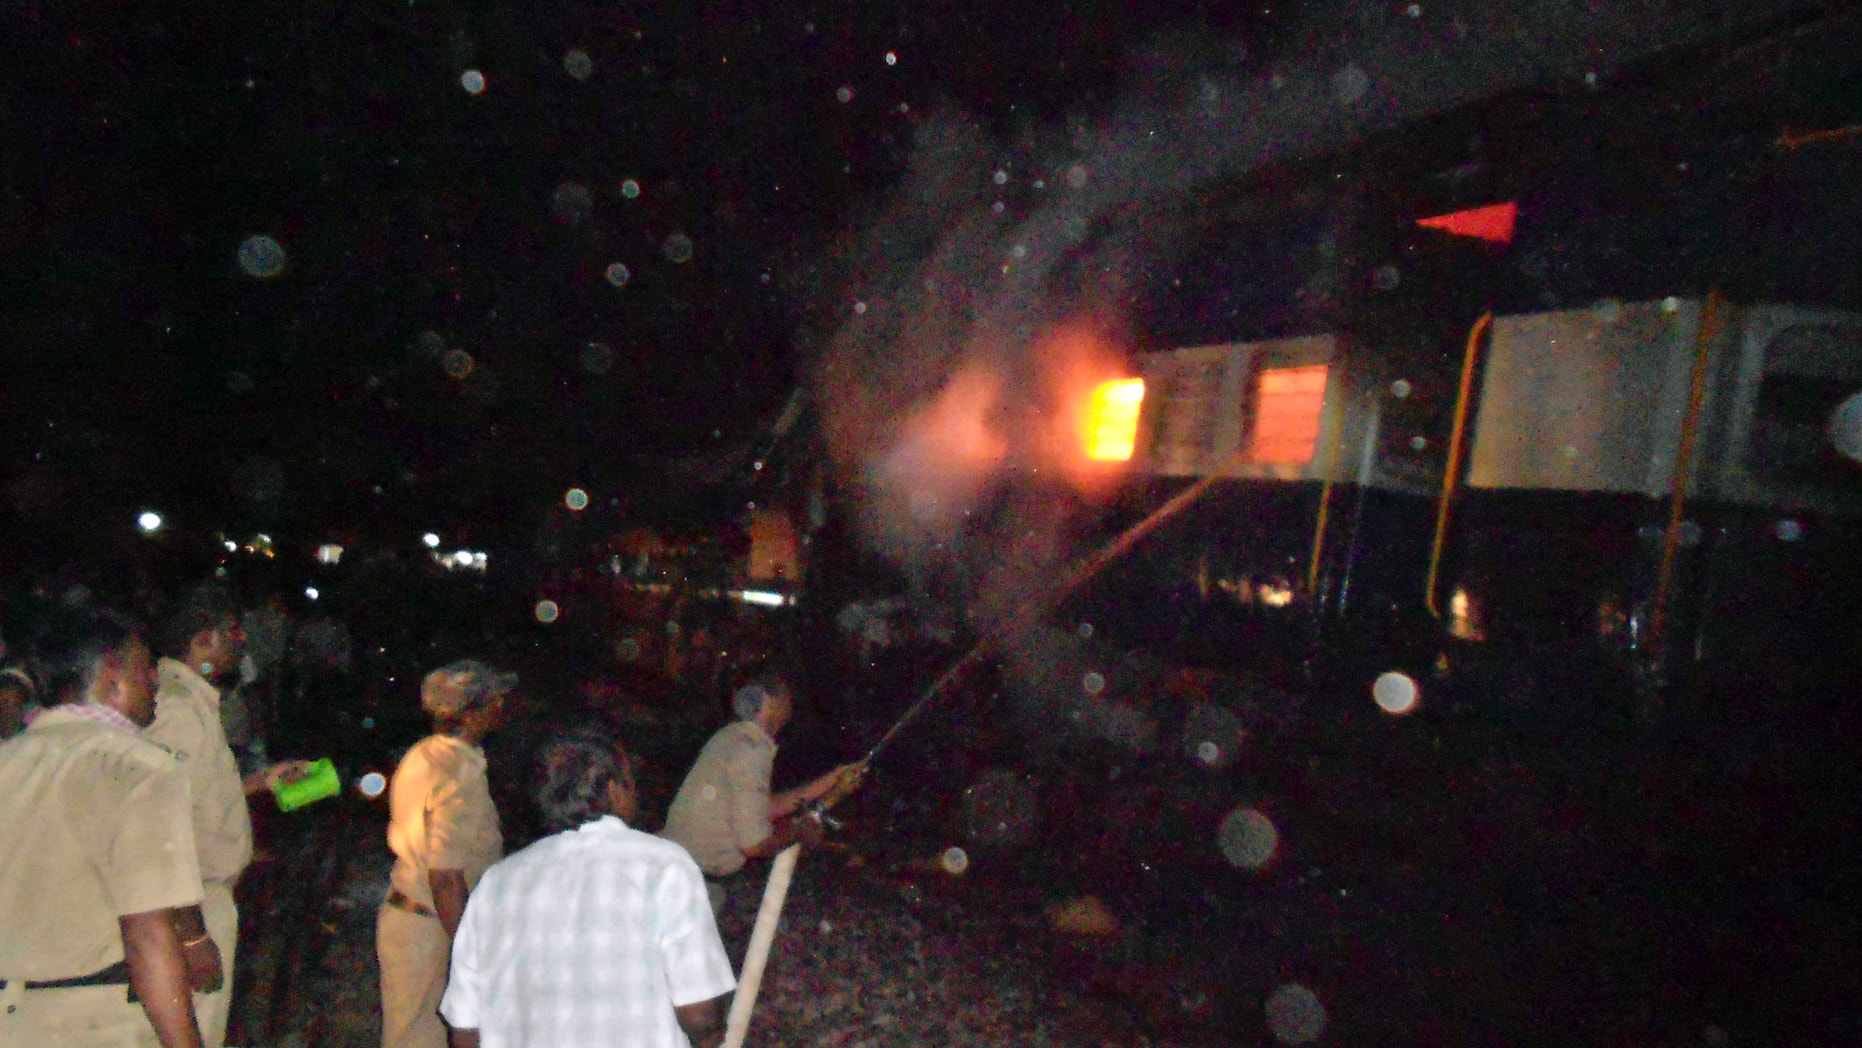 May 22, 2012: Firefighters and policemen try to douse flames on a train after an accident at a station near Penukonda.